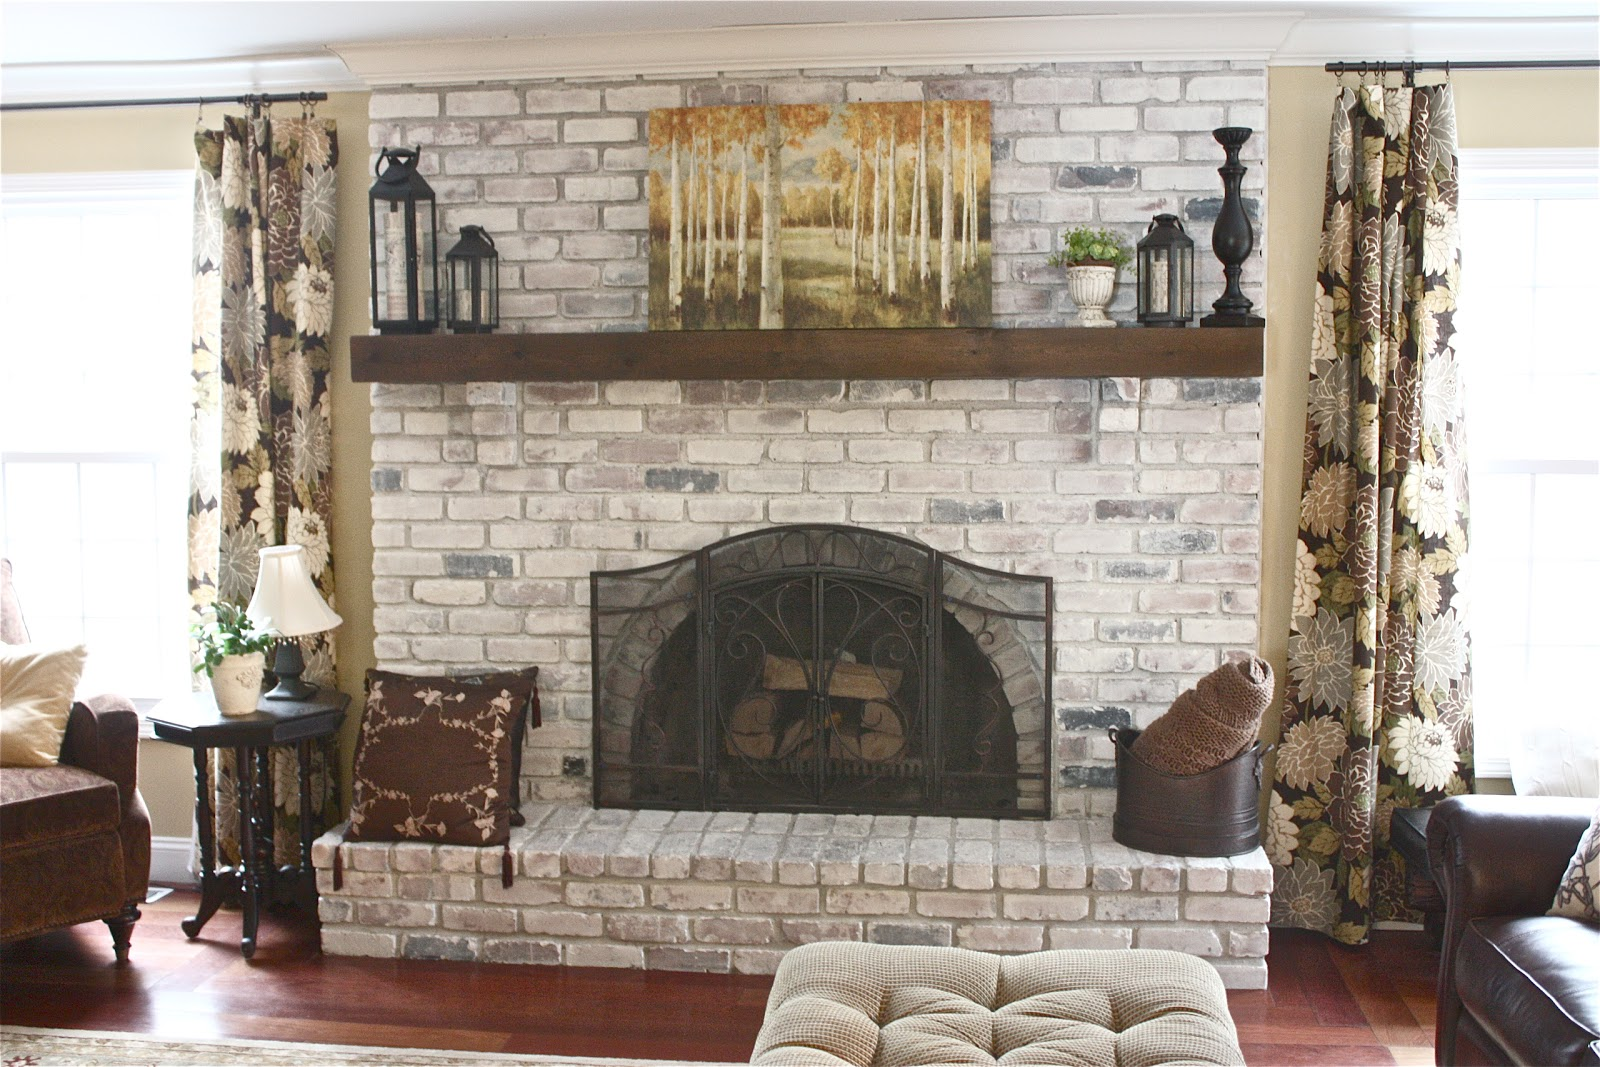 How To Decorate A Brick Fireplace The Yellow Cape Cod White Washed Brick Fireplace Tutorial